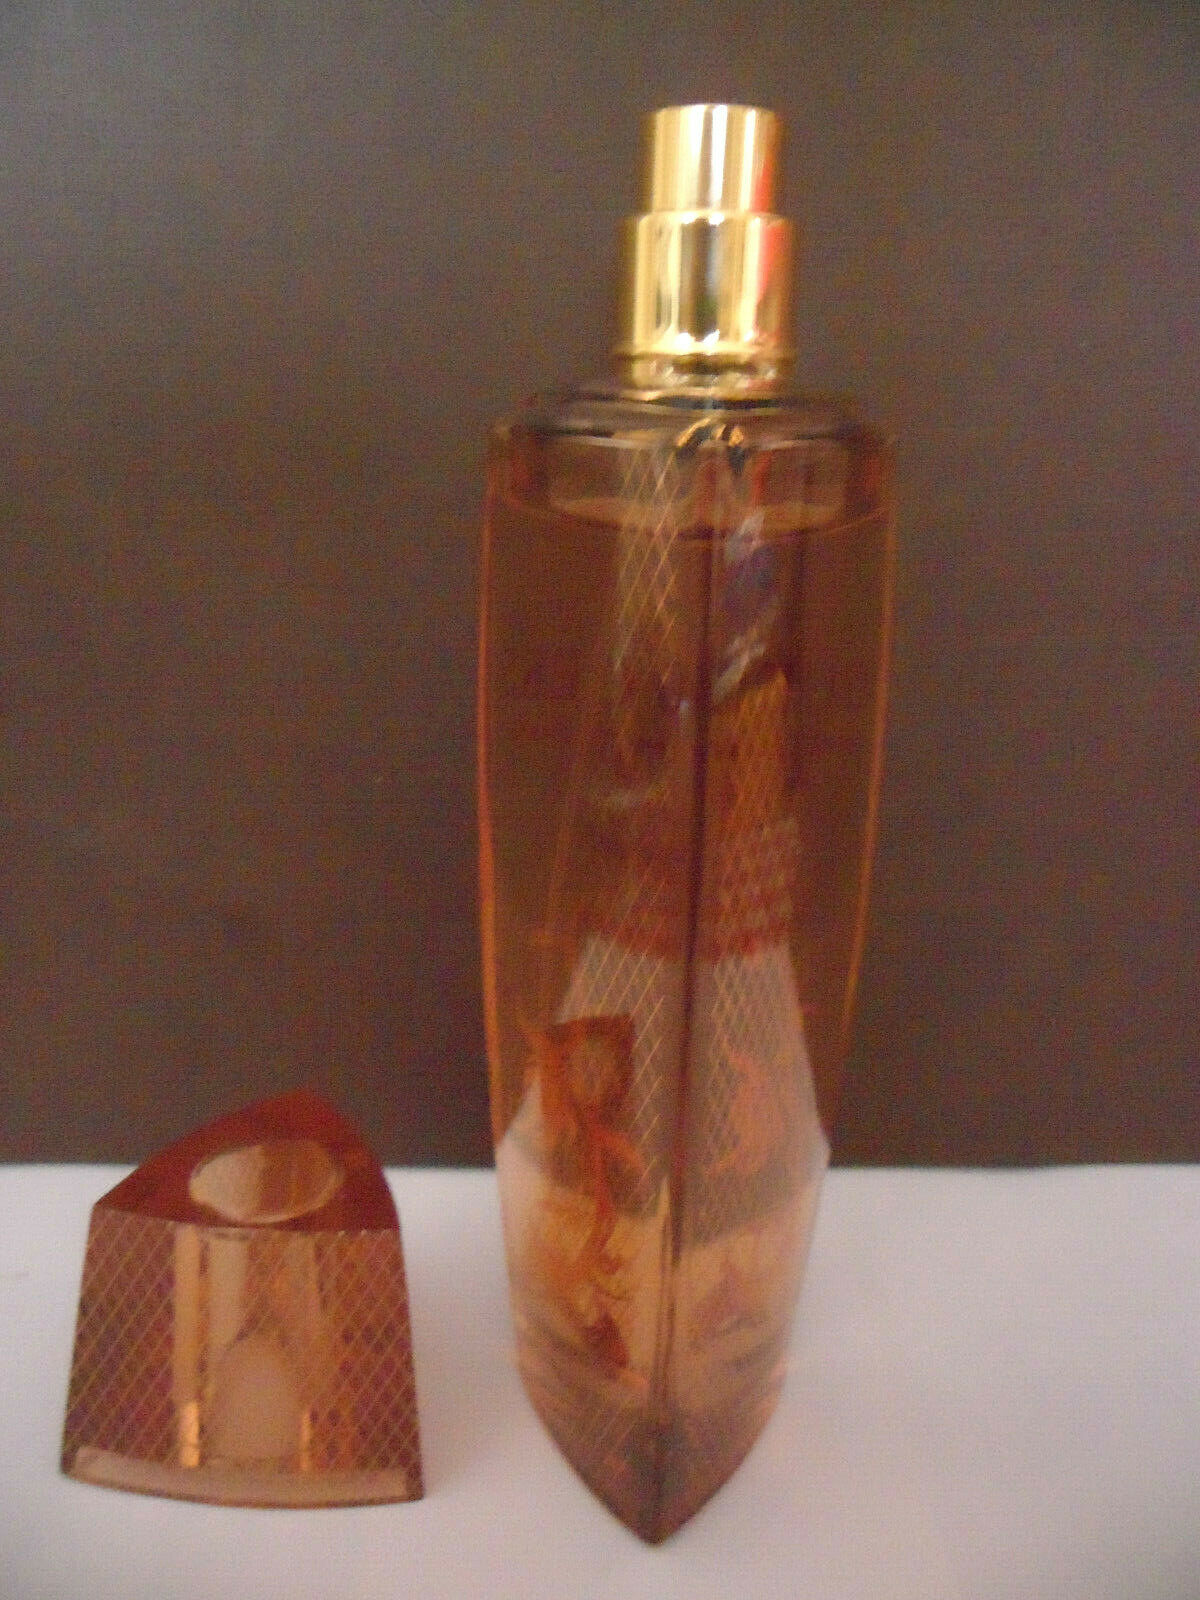 Guess By Marciano 34oz Womens Perfume For Sale Online Ebay